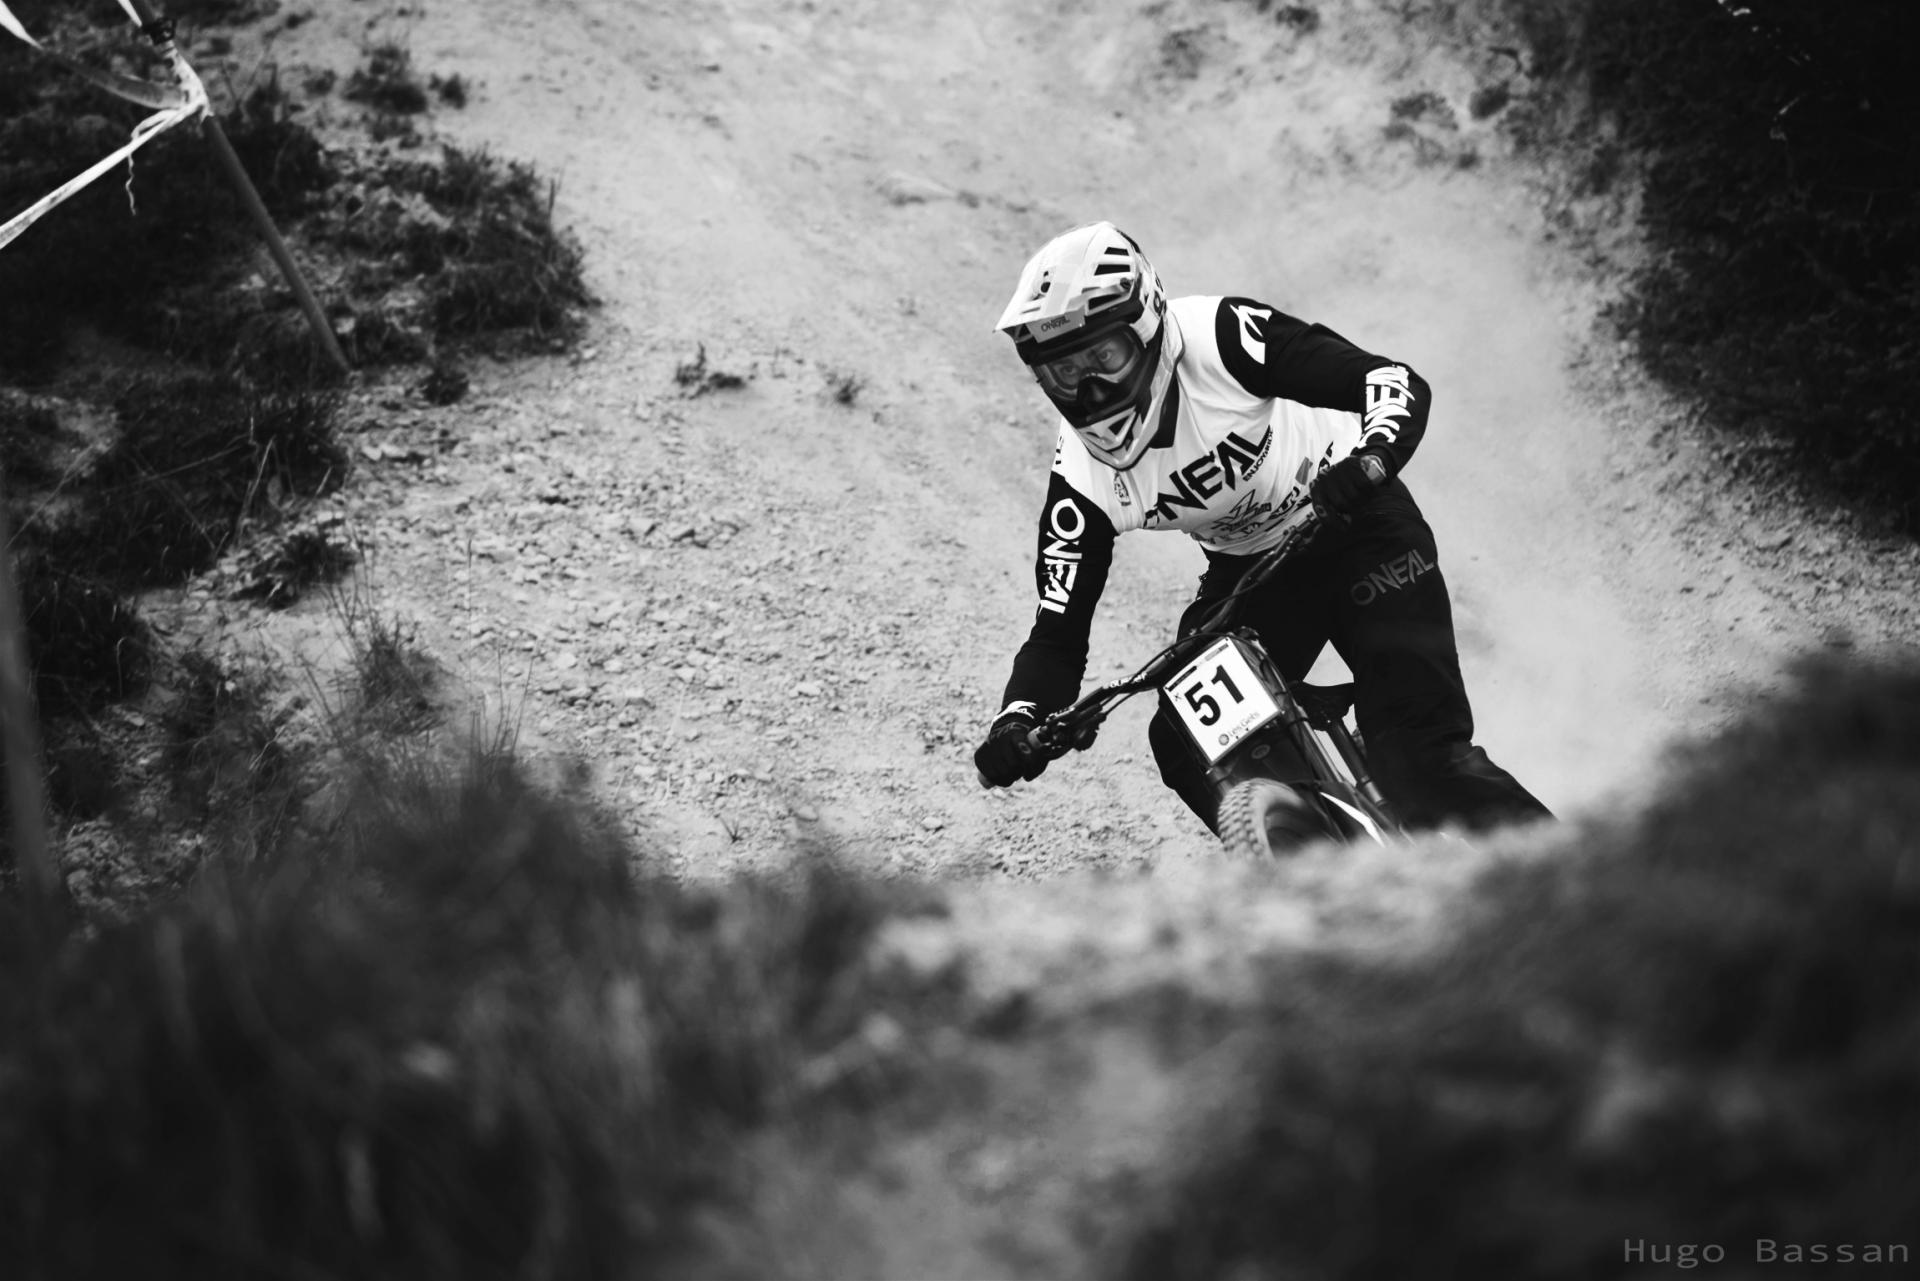 World Cup UCI MTB Les Gets 2019